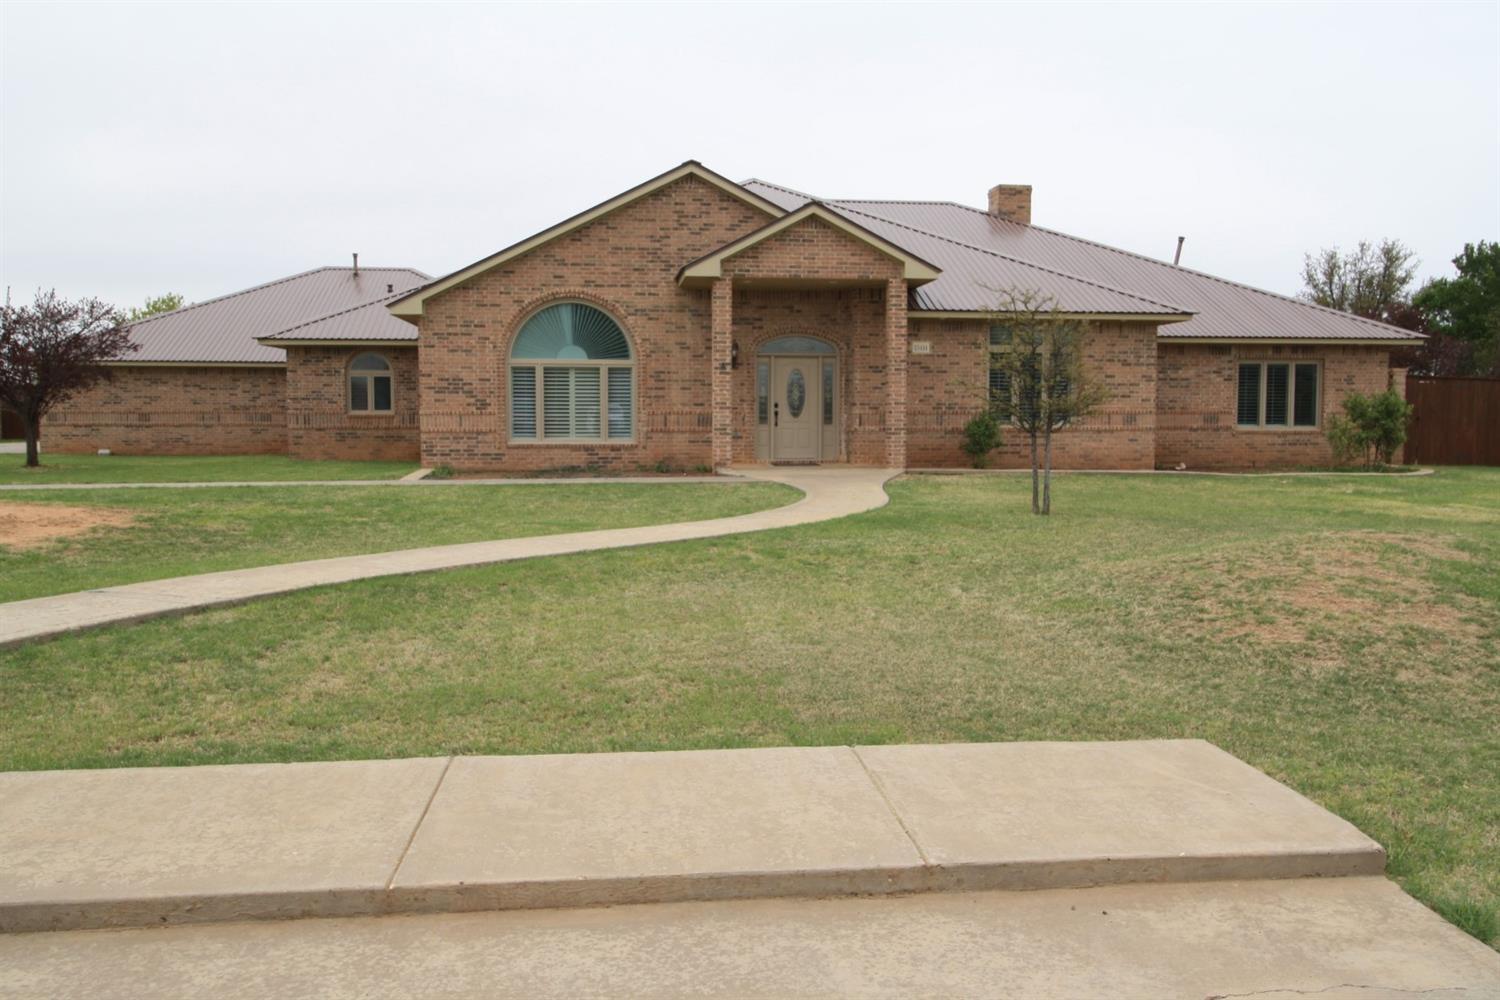 $62,000 BELOW recent appraisal!! This beautiful home in Highland Oaks is a steal ~ 4 Bedrooms ~ 3.5 Bathrooms ~ 3 Car Garage ~ .9 Acres ~ Office w/ Built-in's ~ Formal Dining Area ~ Bar w/ Kegerator & Wine Fridge ~ Large Kitchen w/ Gas Stove-top ~ Granite Counter-tops ~ Wine Rack ~ Huge Walk-in Pantry ~ Open Living Room With Plenty of Room For Family Gatherings ~ Isolated Master Suite ~ Spa Like Master Bath ~ Master Closet Wraps Around the  Tub ~ 3 Large Guest Bedrooms and 2 Additional Bathrooms ~ Basement Has Brick Walls & Storage ~ Utility Room Has More Storage Than You Know What to do With....Sink, 2 Walk-In Pantries & Room For Freezer ~ Walk Outside into the Gorgeous Oasis...Huge Covered Patio ~ Indoor/Outdoor Pool w/ Slide, Waterfall, Bar, & Bathroom!!  Oh, And Did I Mention..INSTANT Equity!!  Come See This Amazing Home Today!